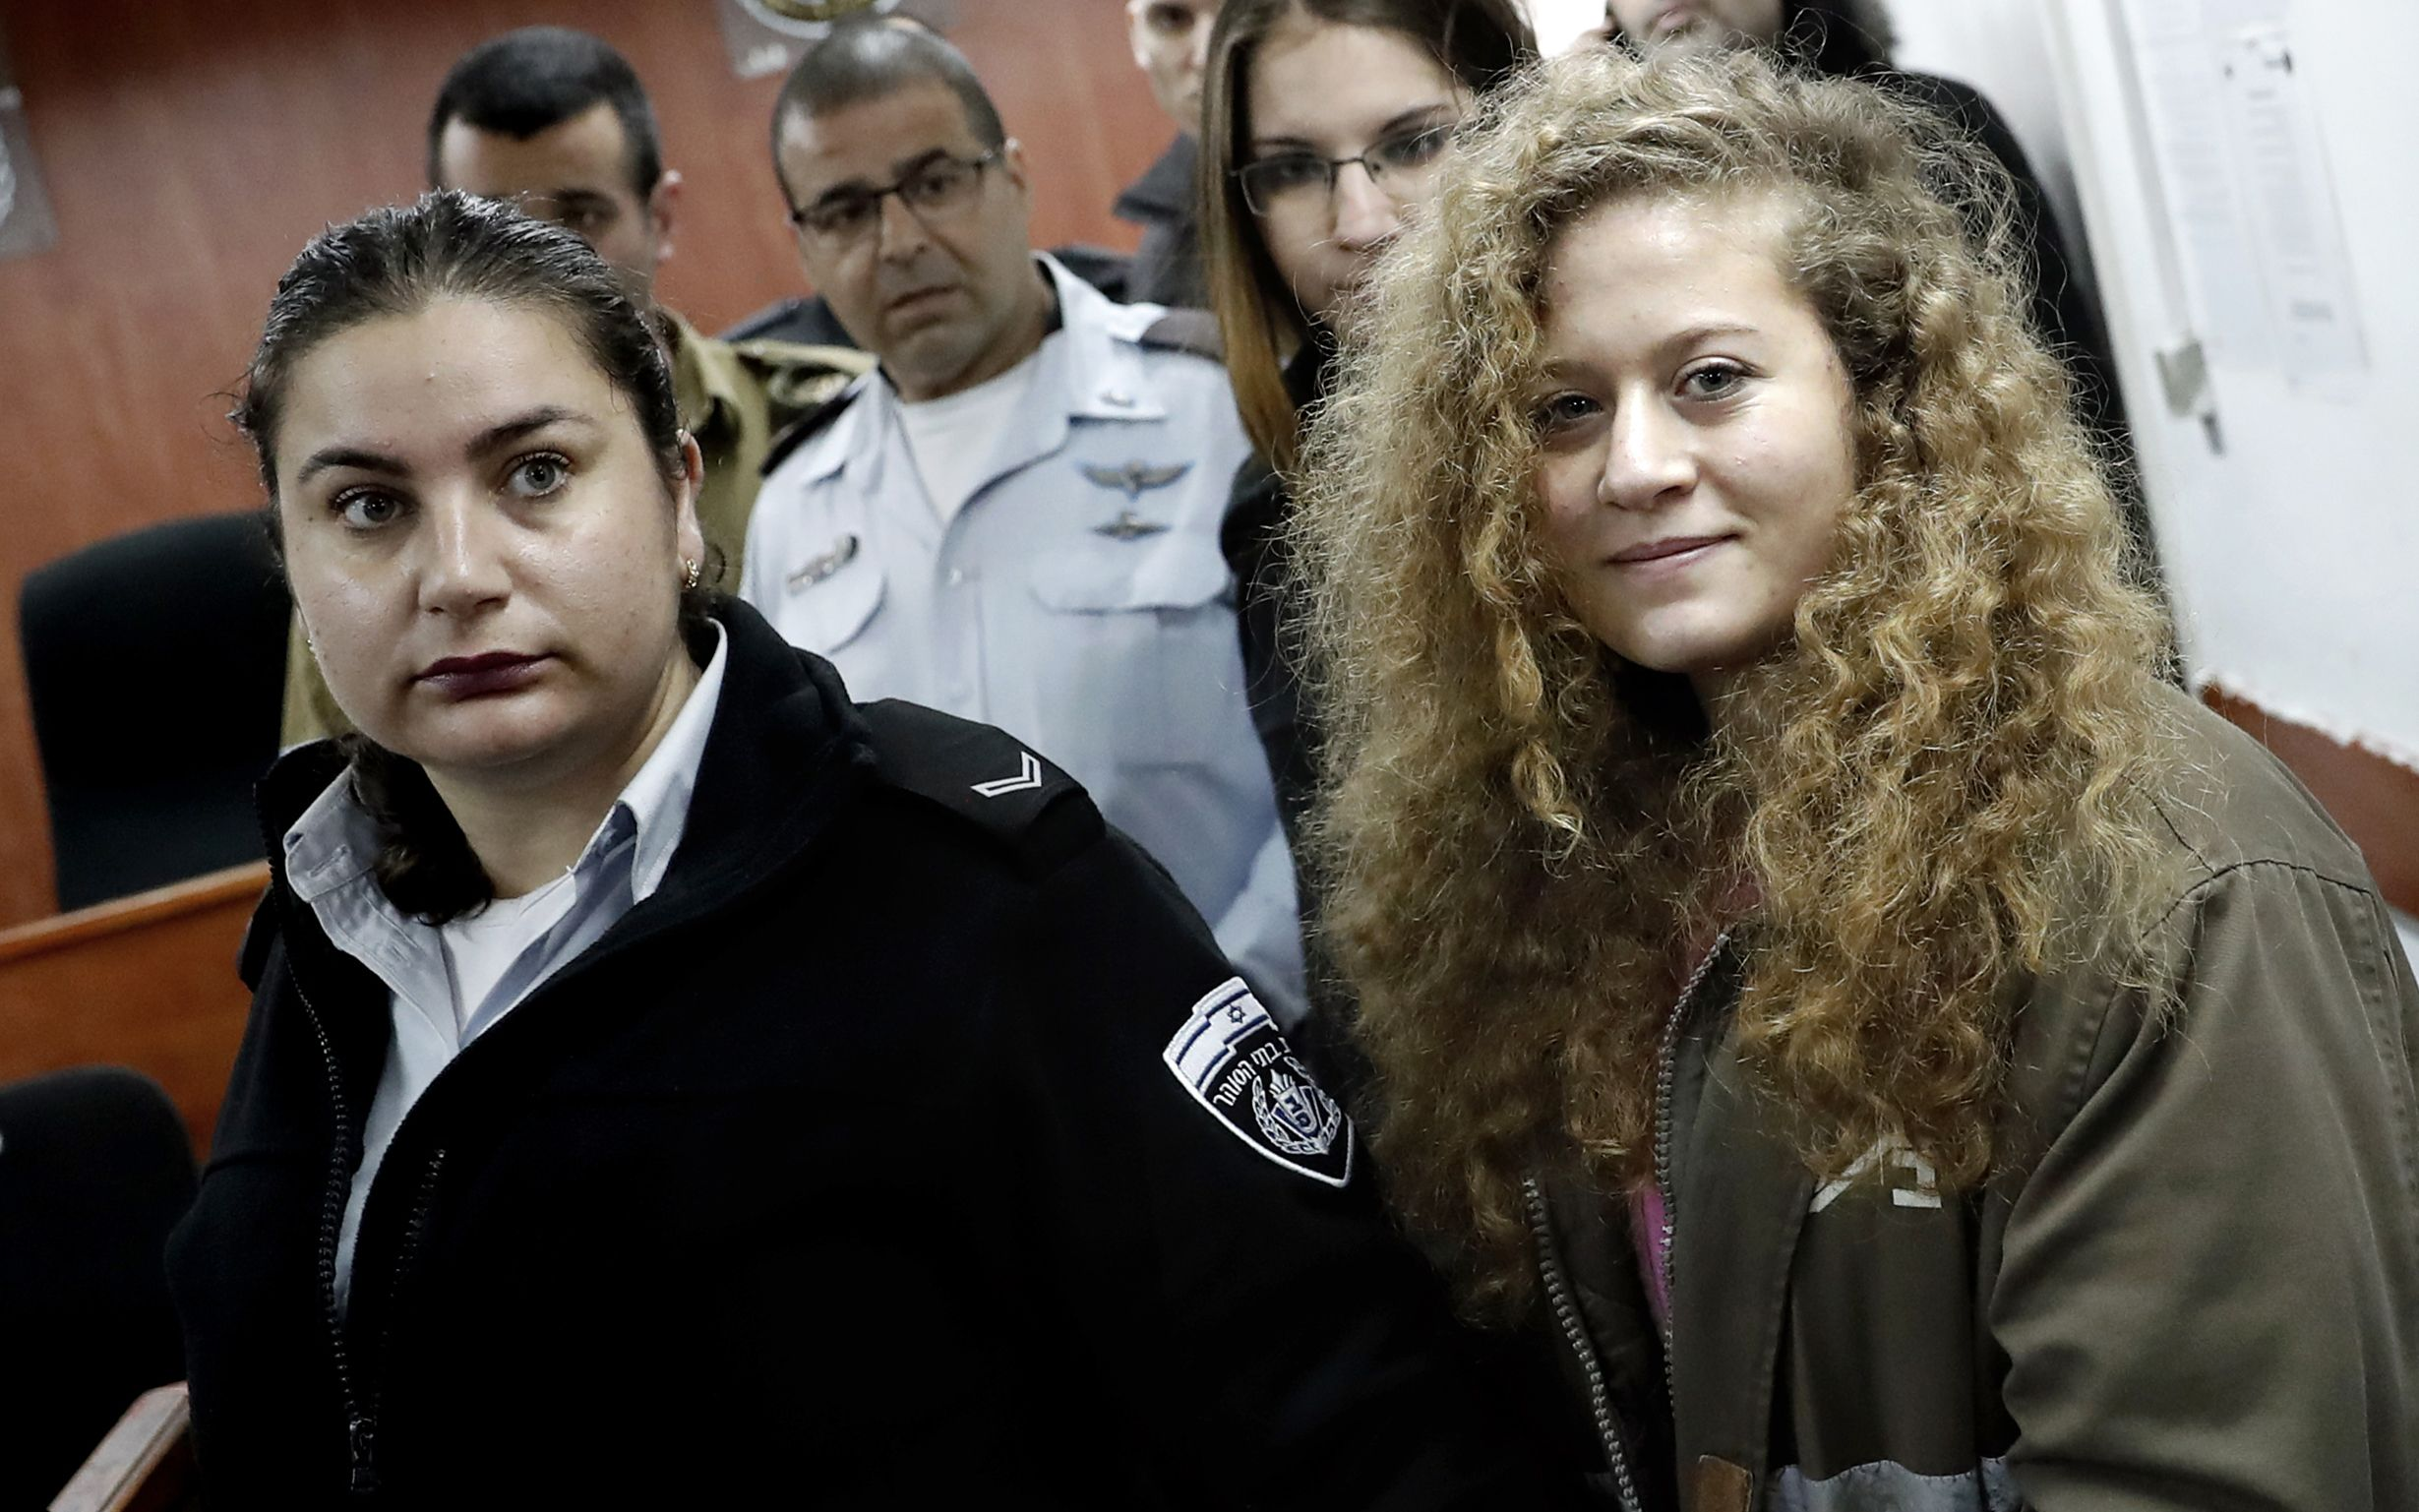 The girl faces 10 years in prison for slapping an Israeli soldier in the West Bank